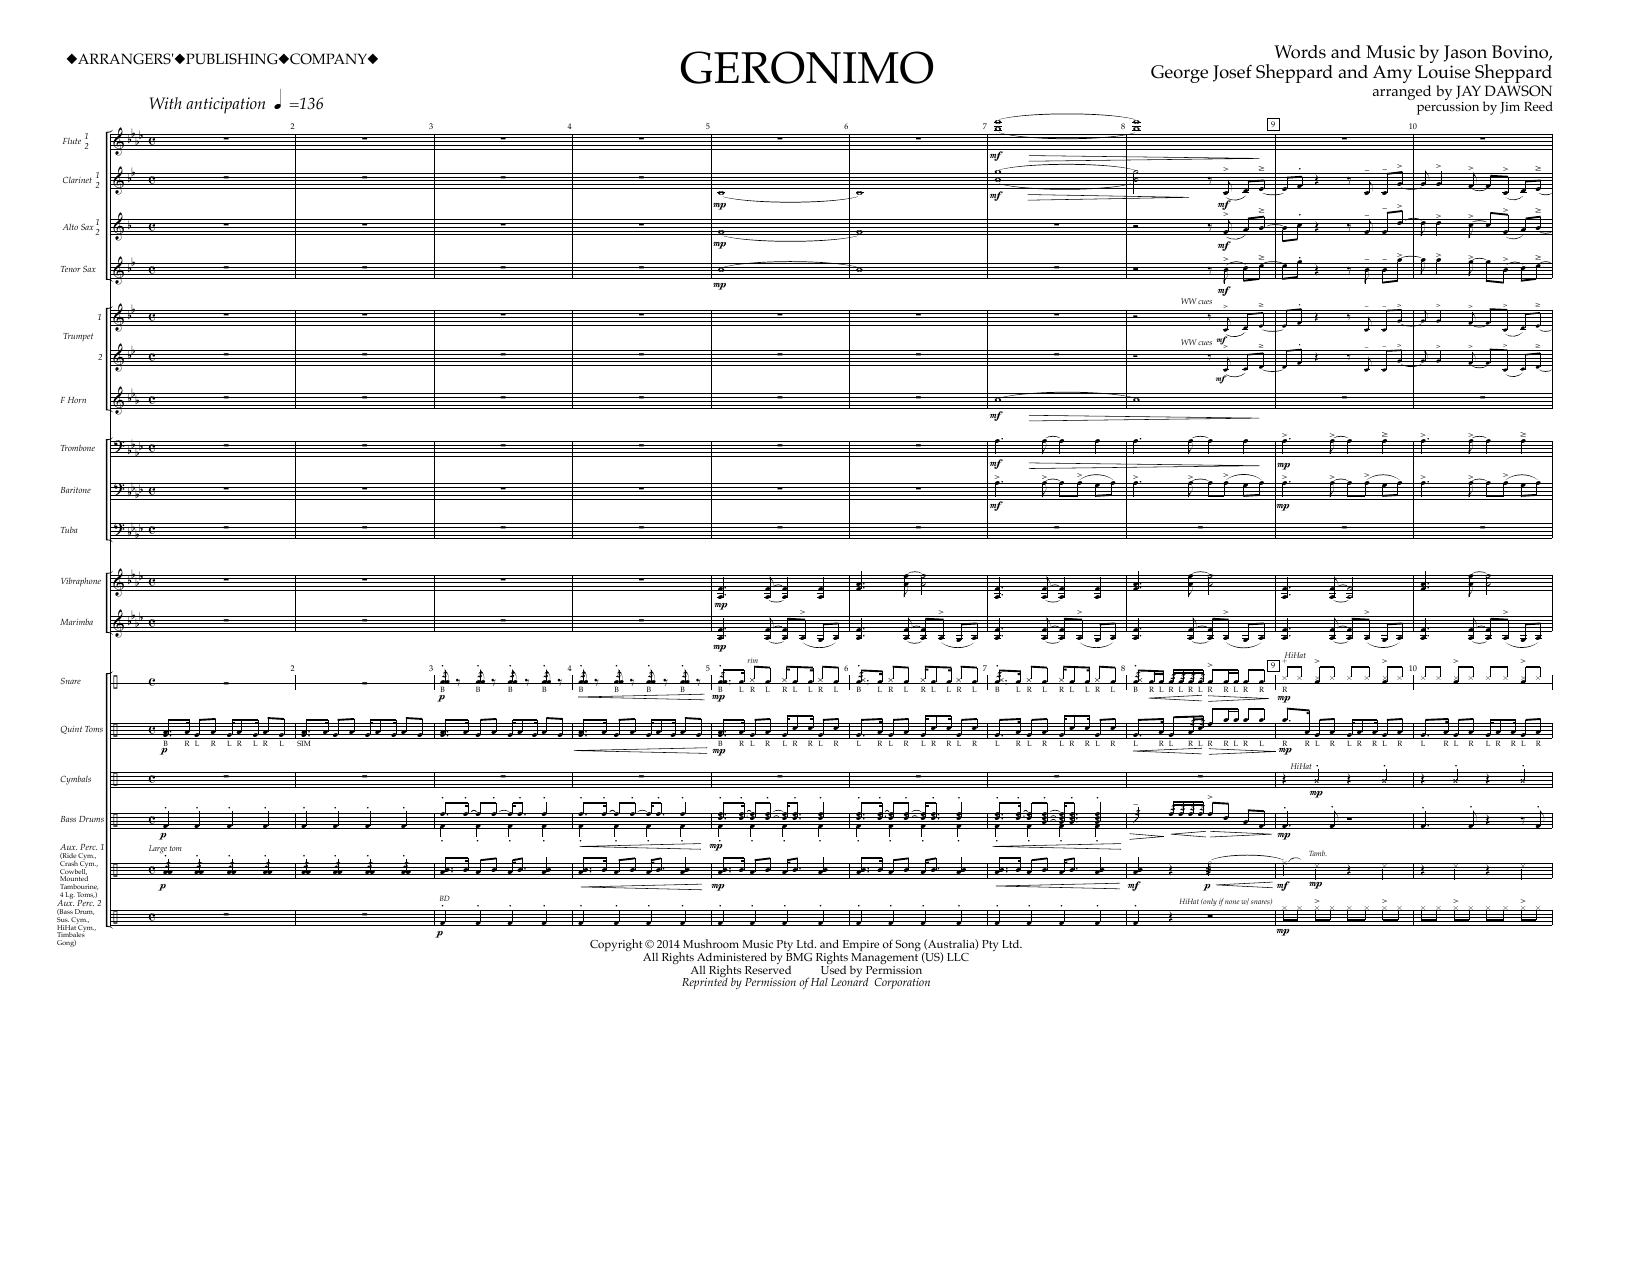 Geronimo (COMPLETE) sheet music for marching band by Jay Dawson, Amy Louise Sheppard, Jason Bovino and Sheppard. Score Image Preview.